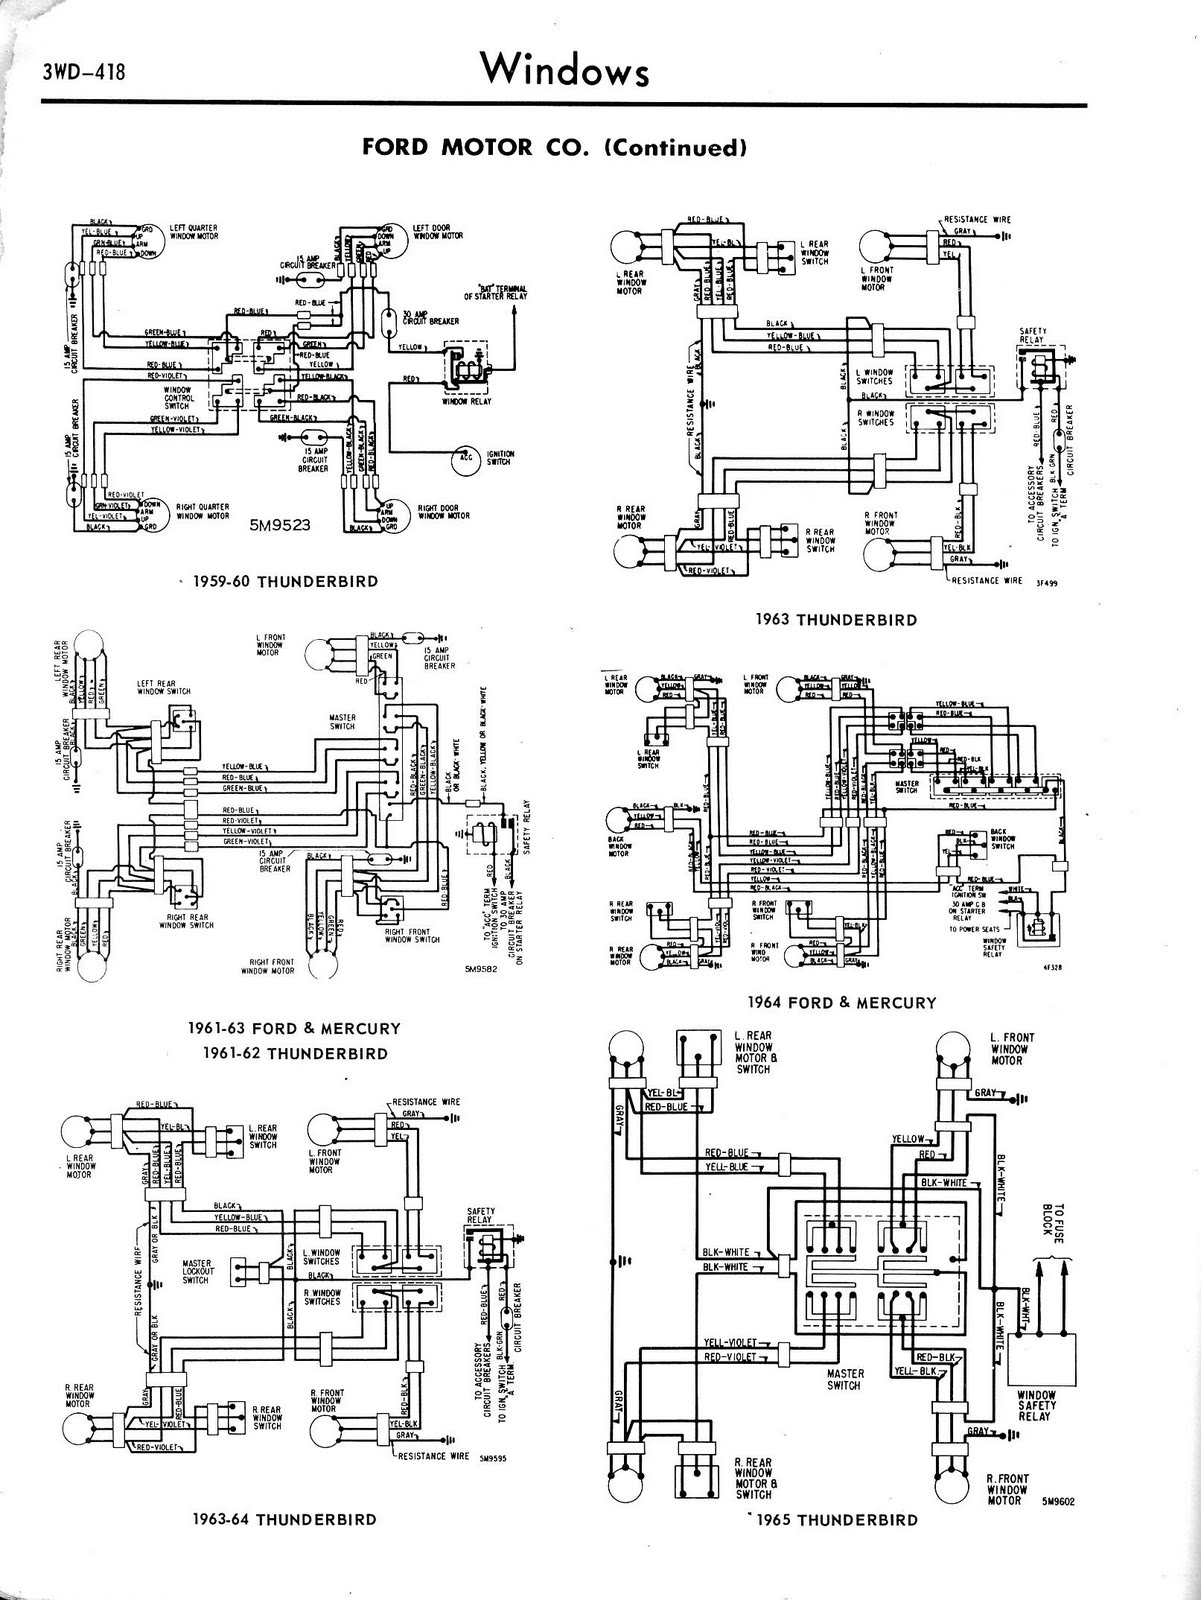 1965 thunderbird engine diagram 1965 thunderbird wiring diagram